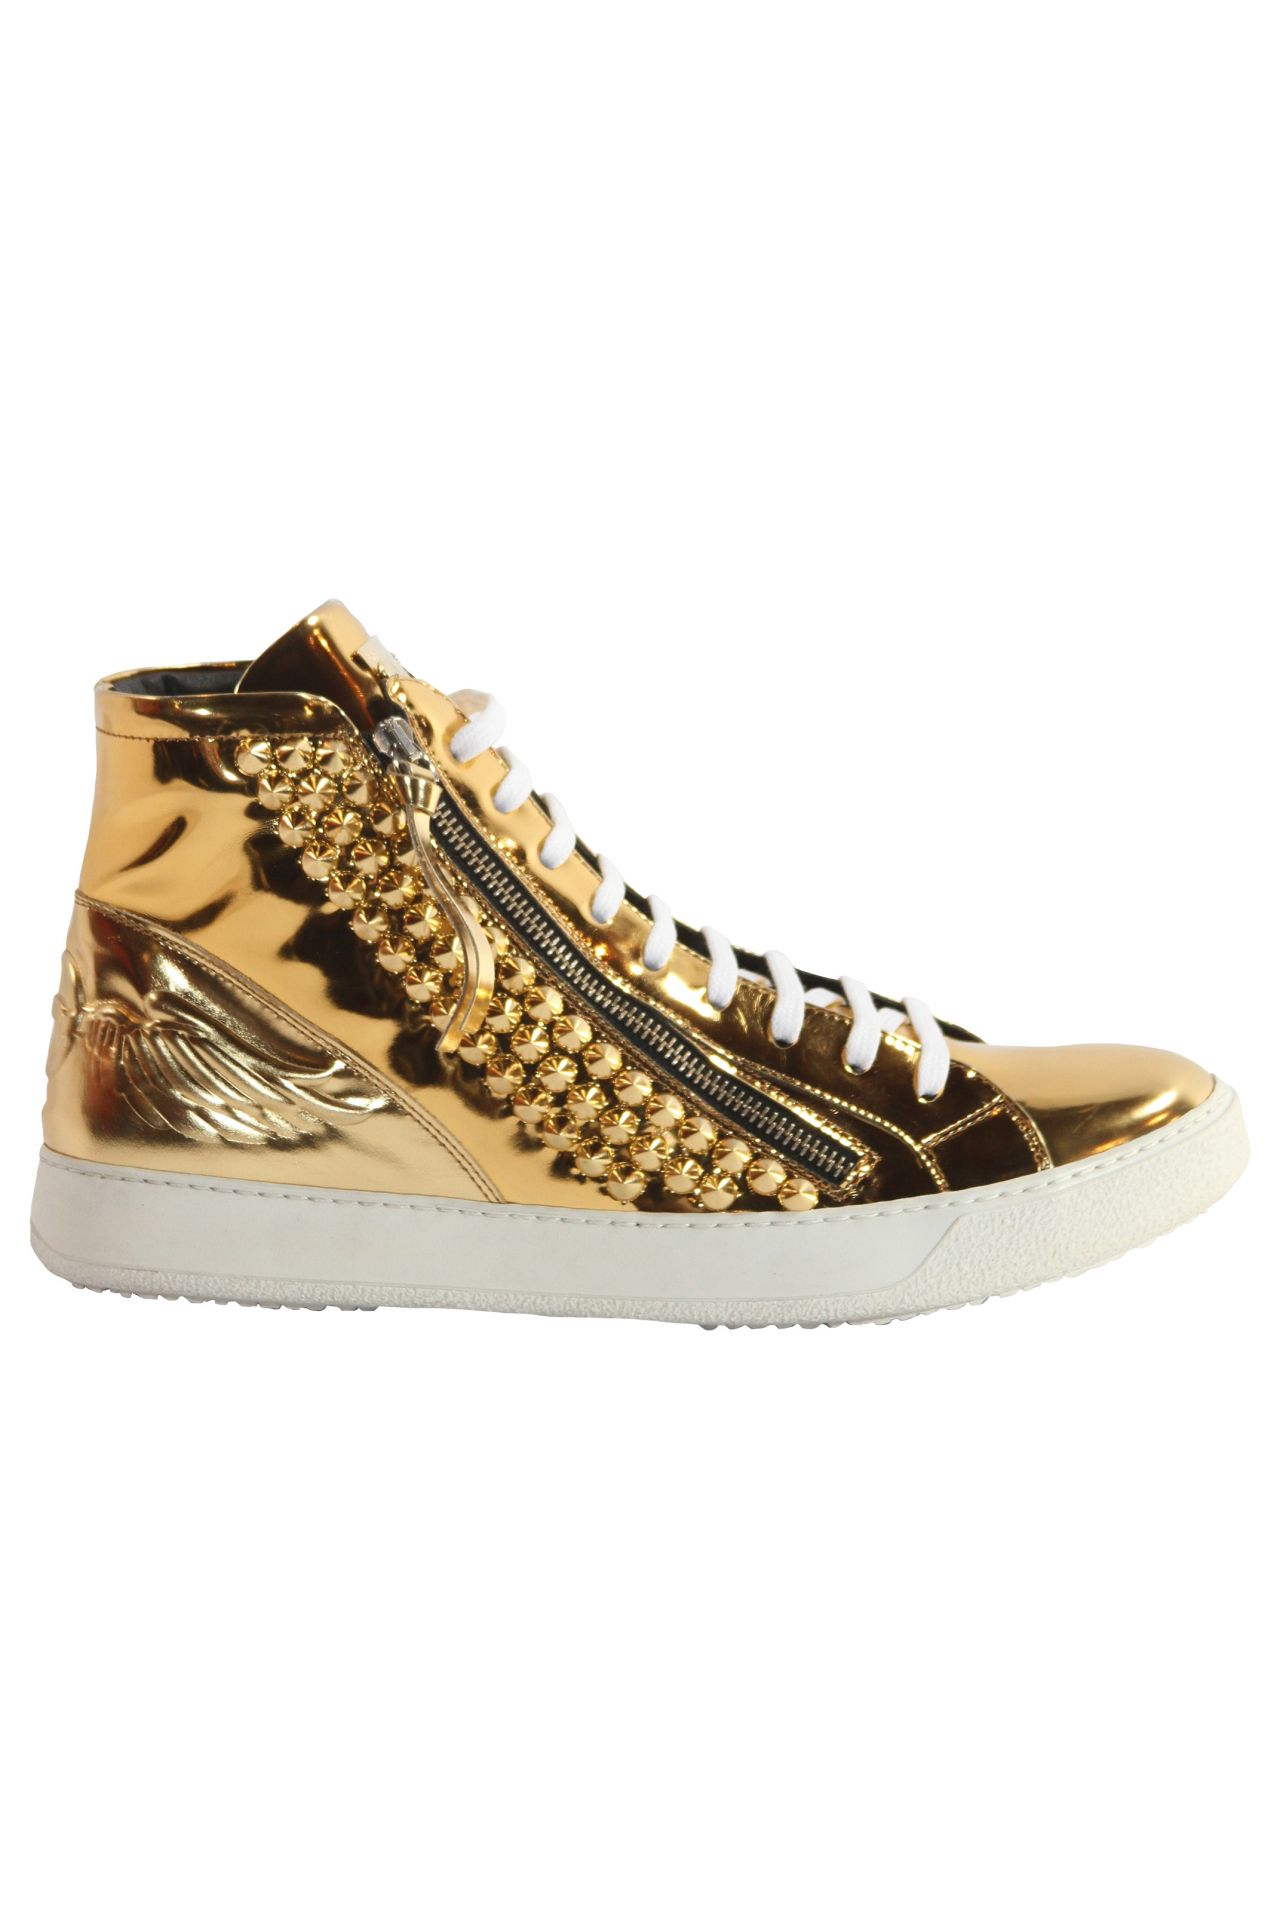 HI TOP ZIPPER IN GOLD WITH SPIKES